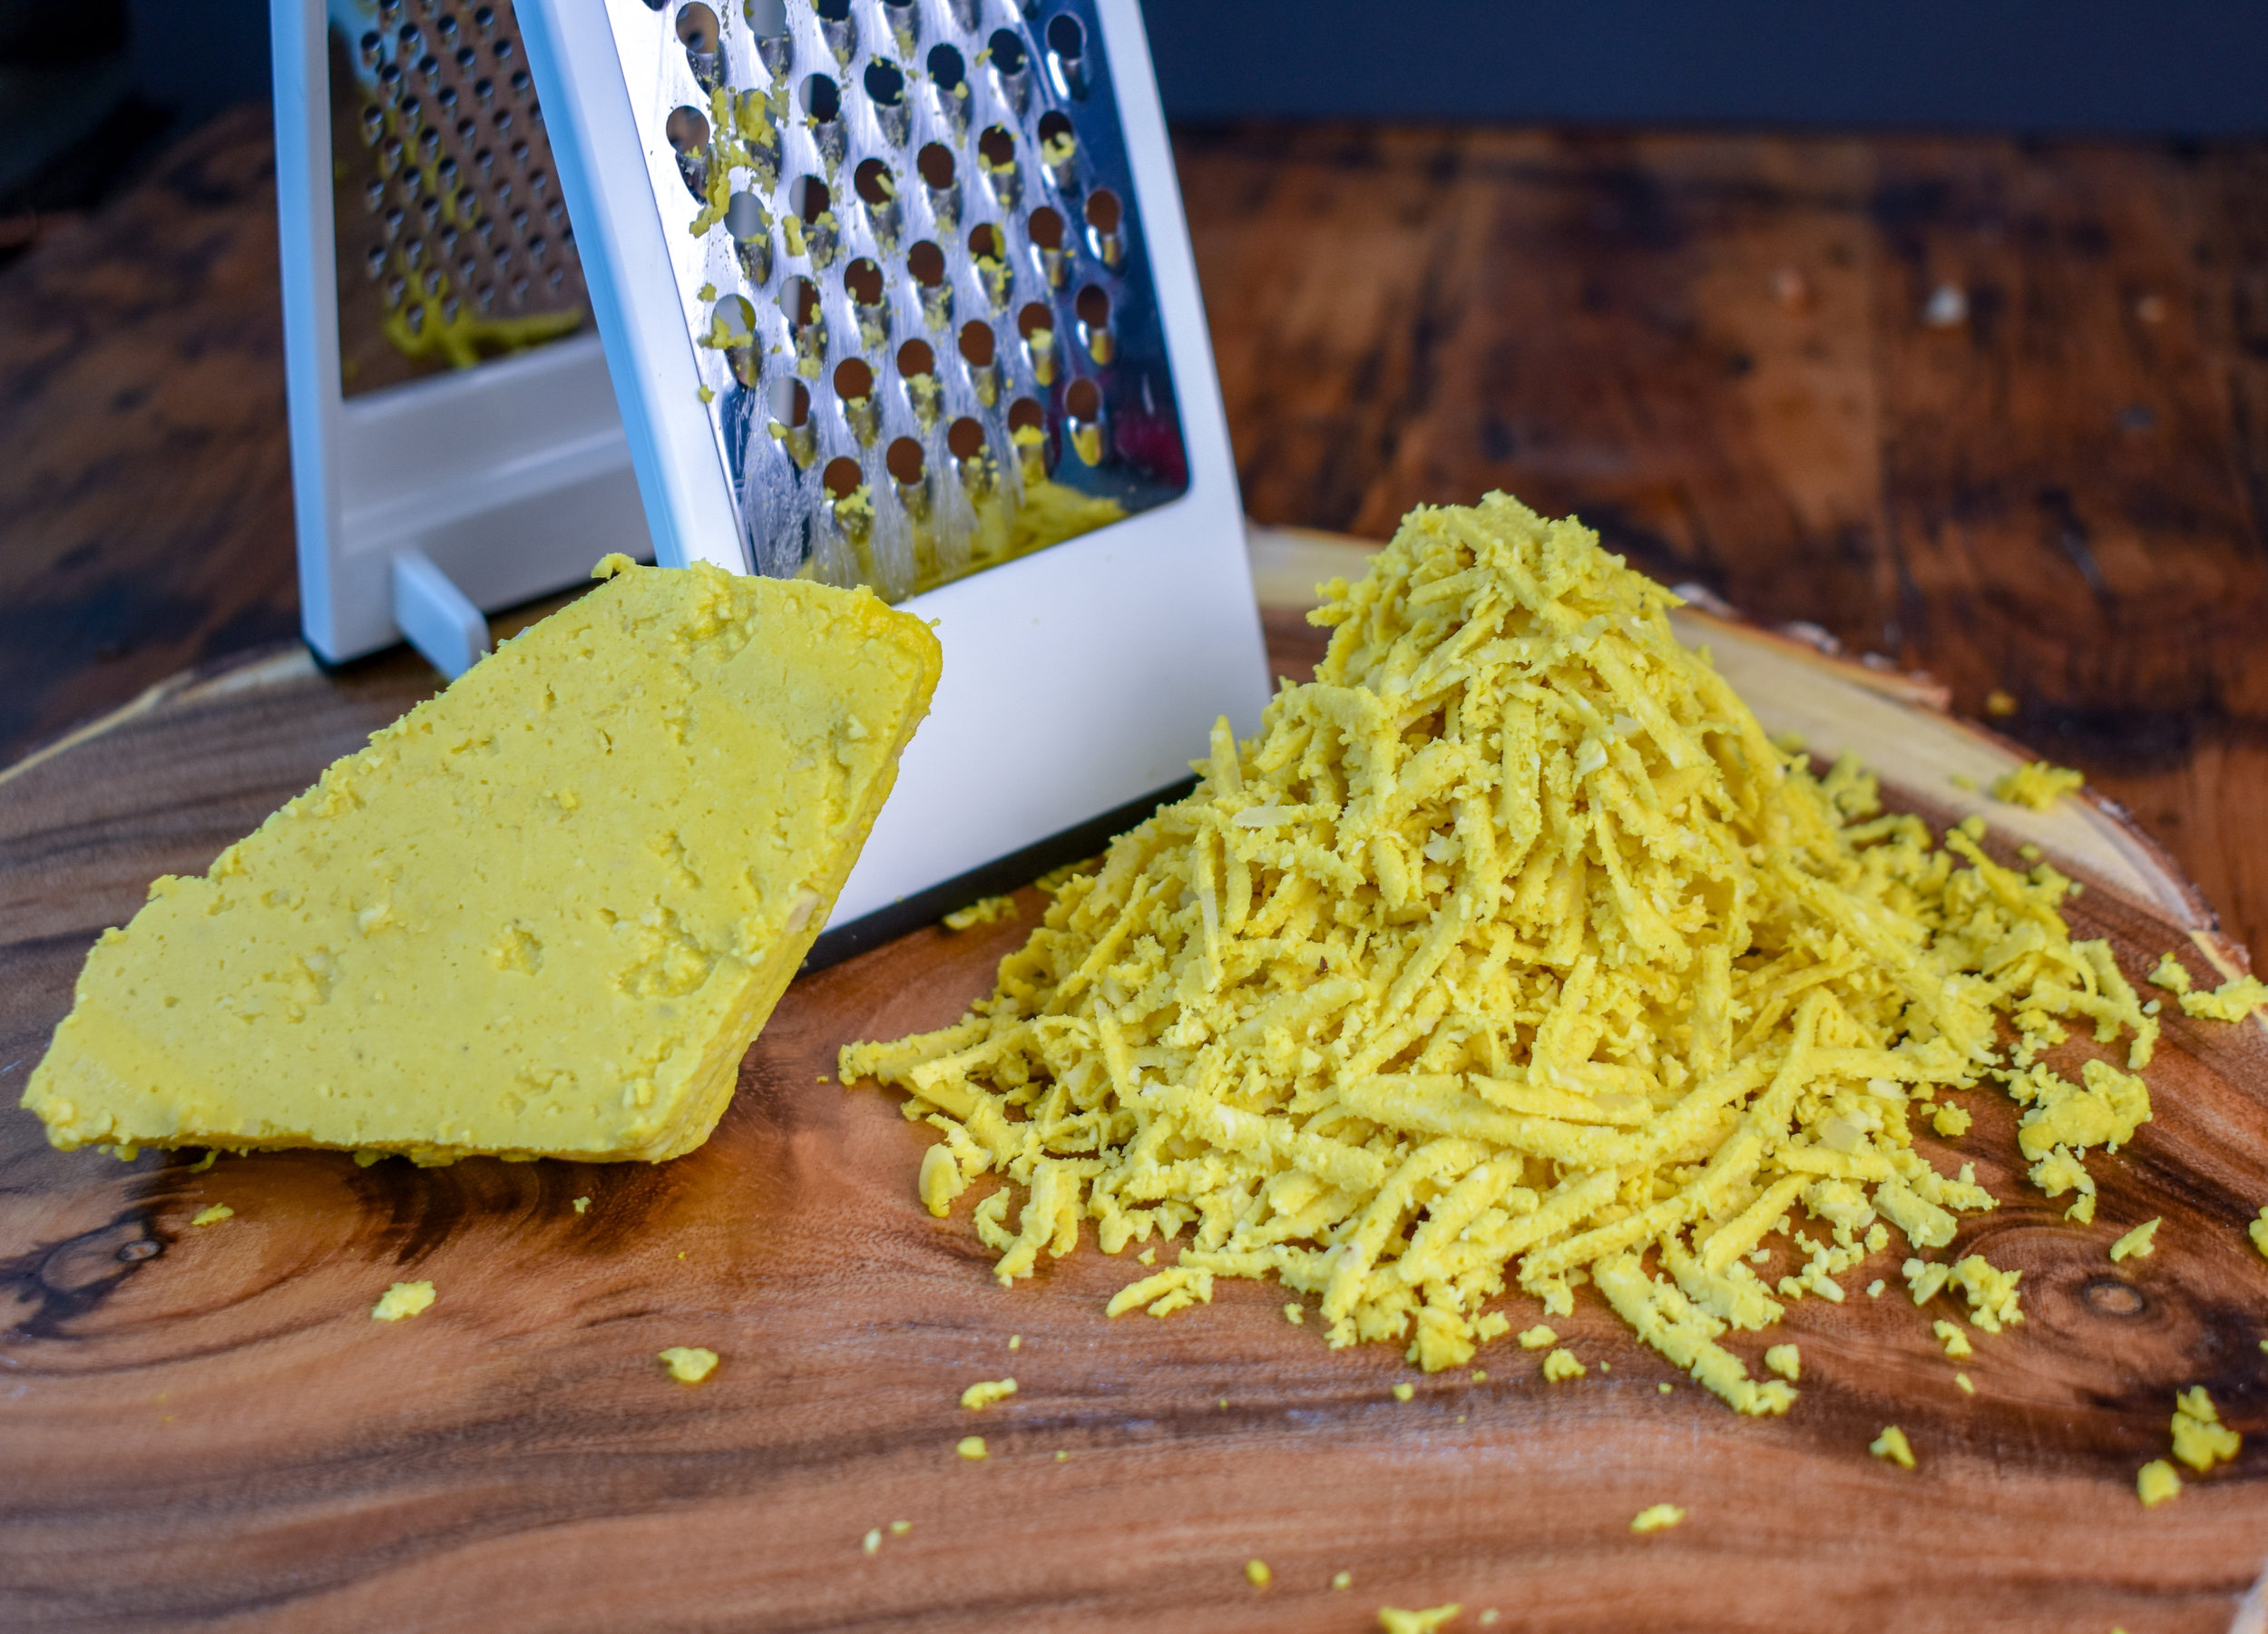 6. Use a cheese grater to great your cheese block. To not crumble it, grate down, pull the bloc off, grate down again.